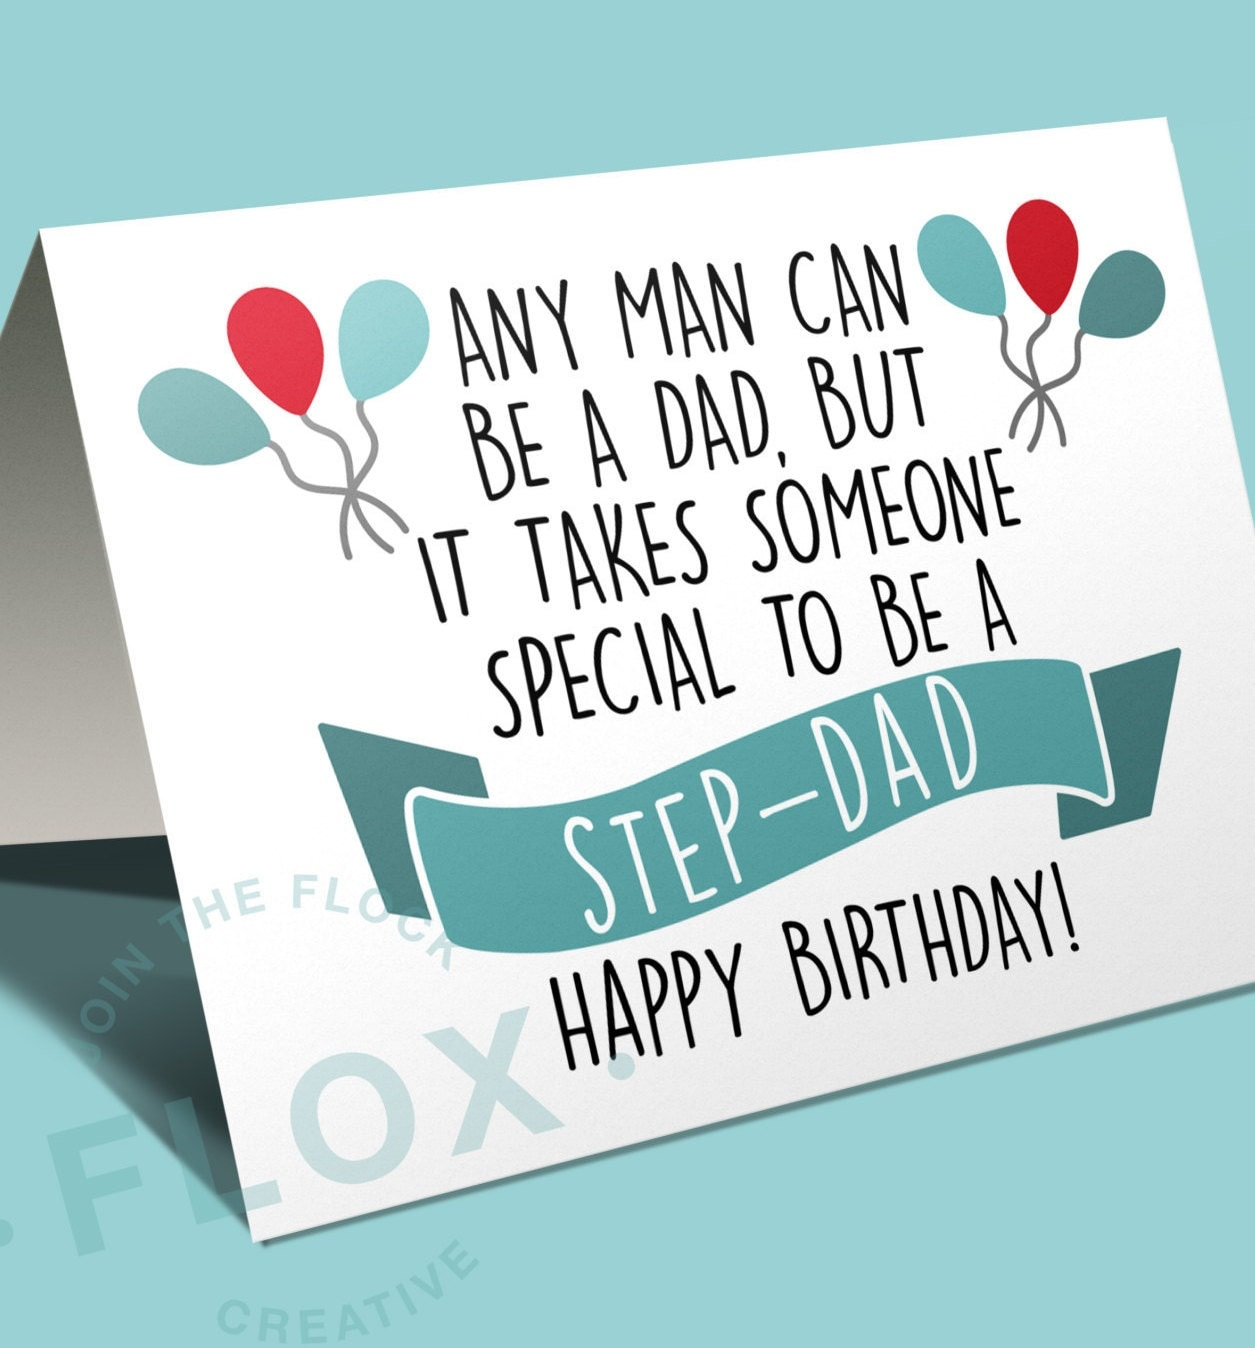 Any man can be a dad but it takes someone special to be a – Step Dad Birthday Cards